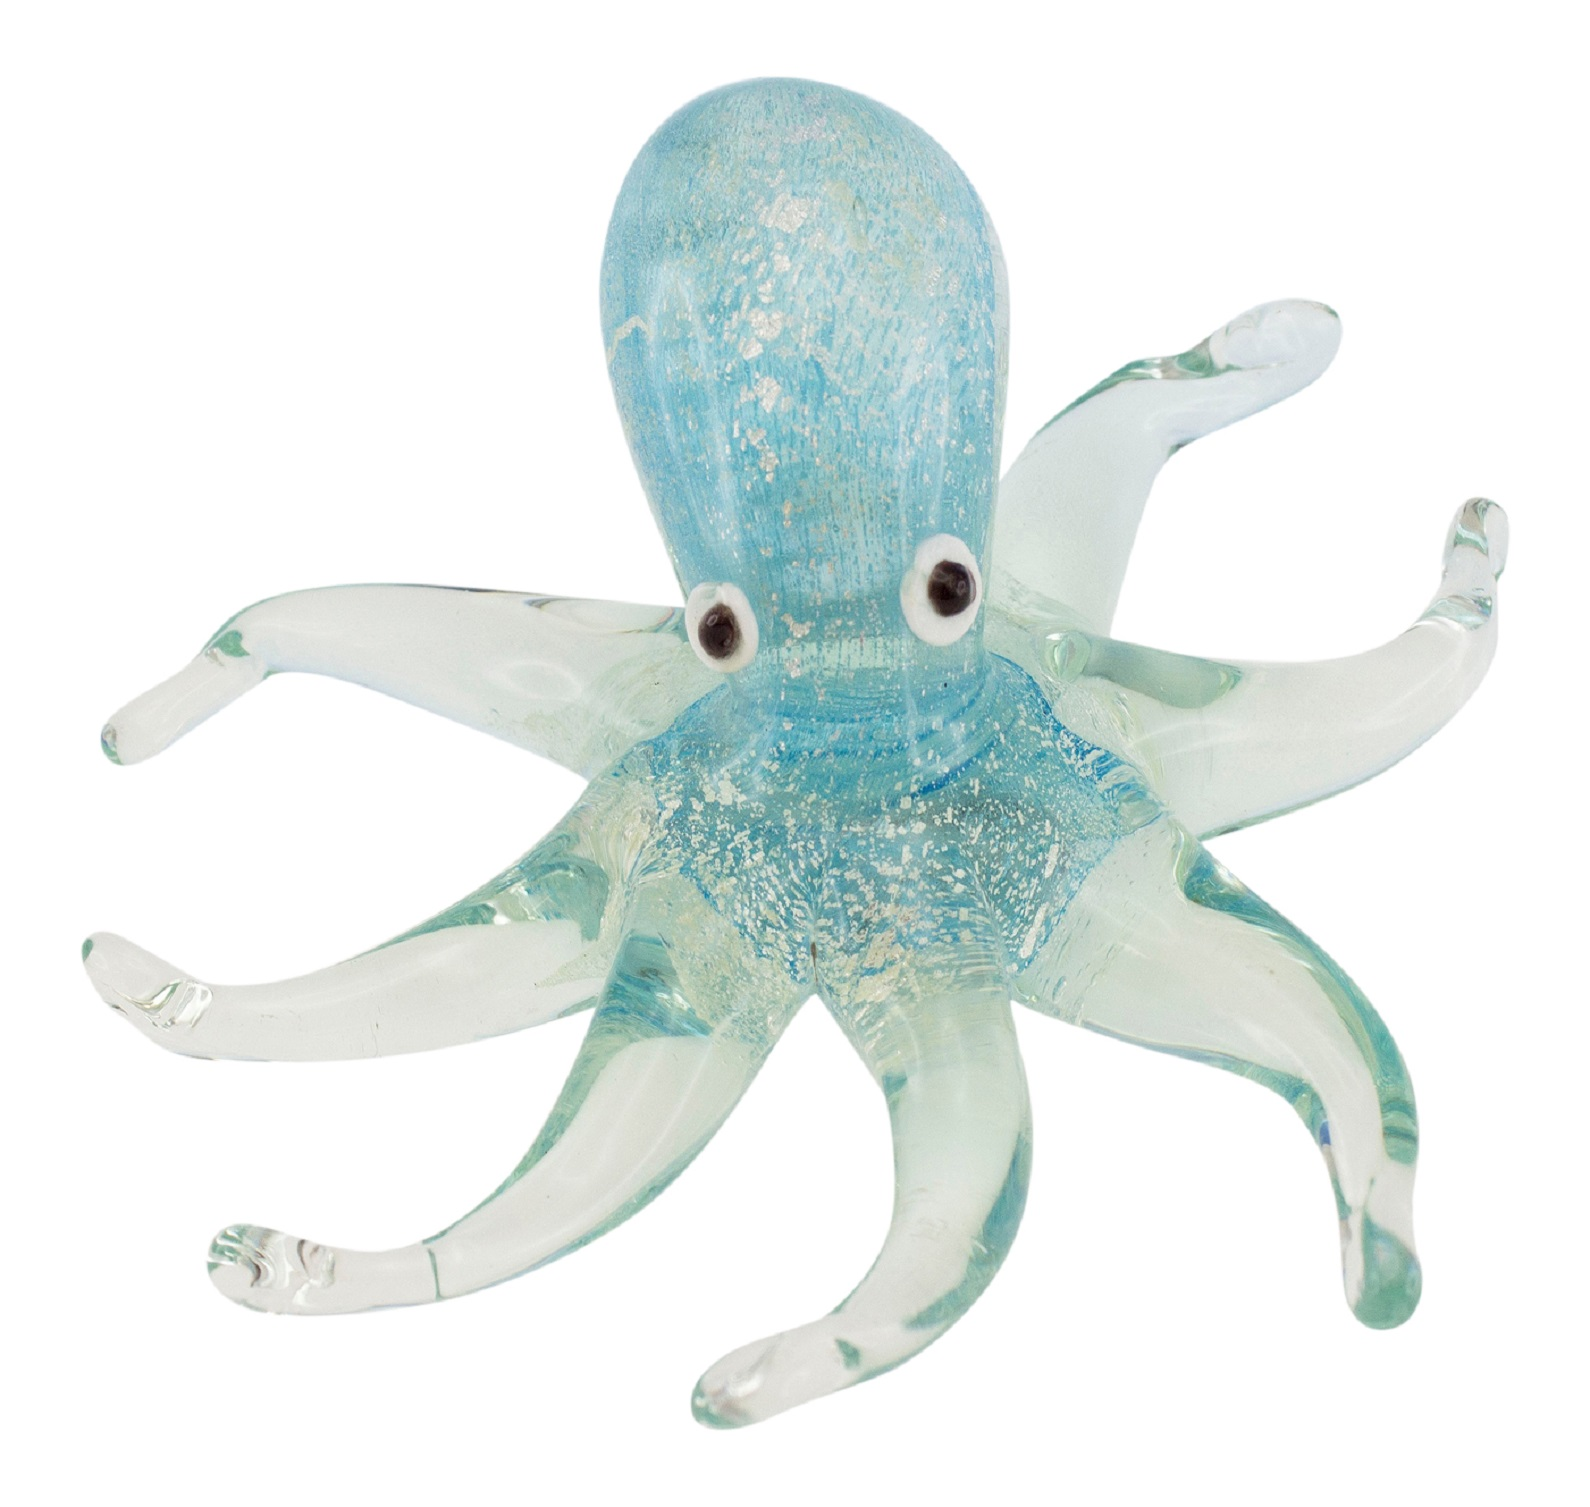 Coastal Octopus Glow in The Dark Art Glass 5 Inch Tabletop Figurine